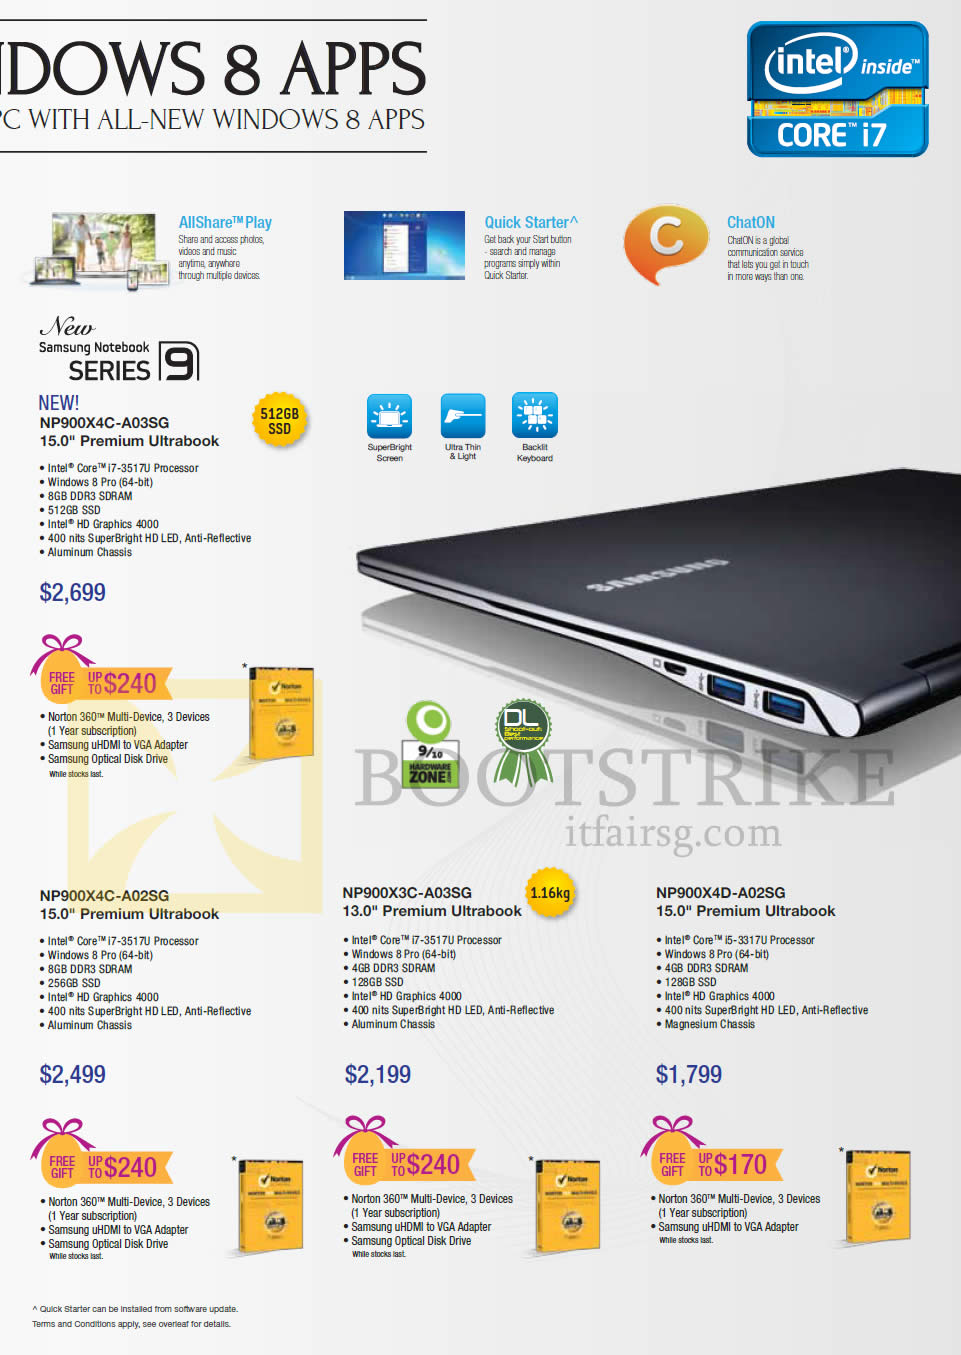 Samsung notebook in singapore - It Show 2013 Price List Image Brochure Of Samsung Notebooks Series 9 Np900x4c A03sg Ultrabook